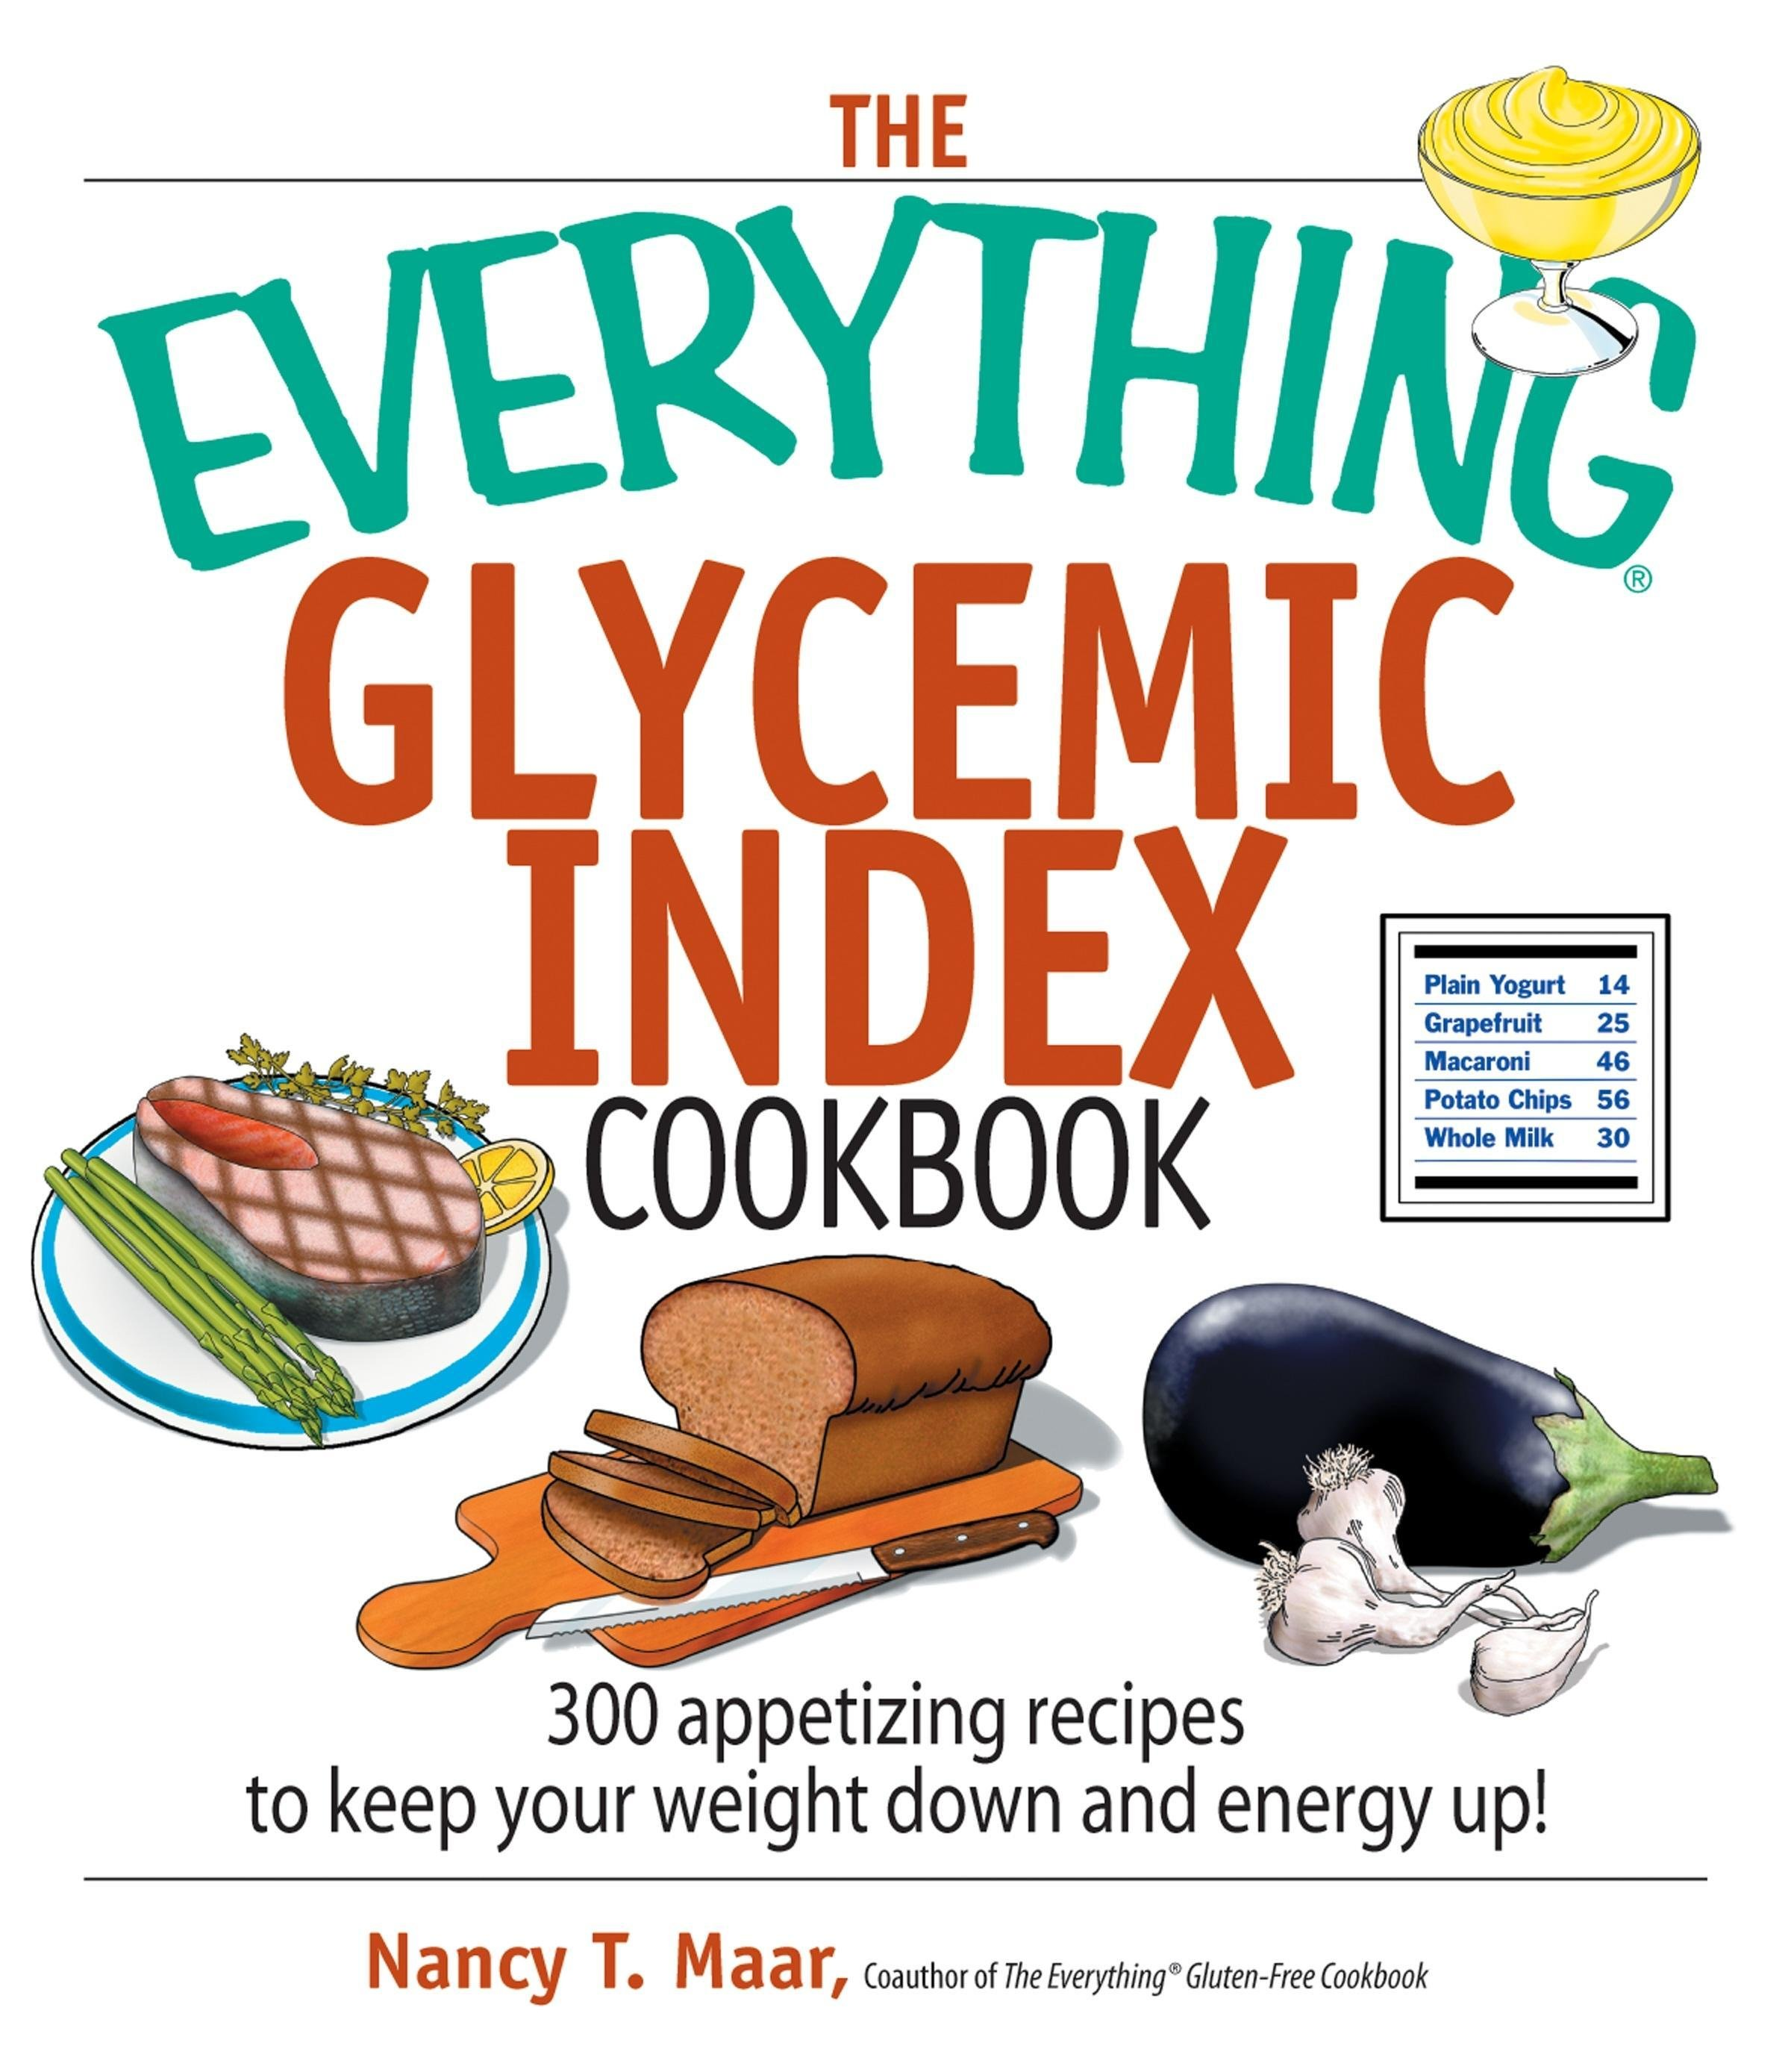 The Everything Glycemic Index Cookbook: 300 Appetizing Recipes to Keep Your Weight Down And Your Energy Up! EB9781605503370